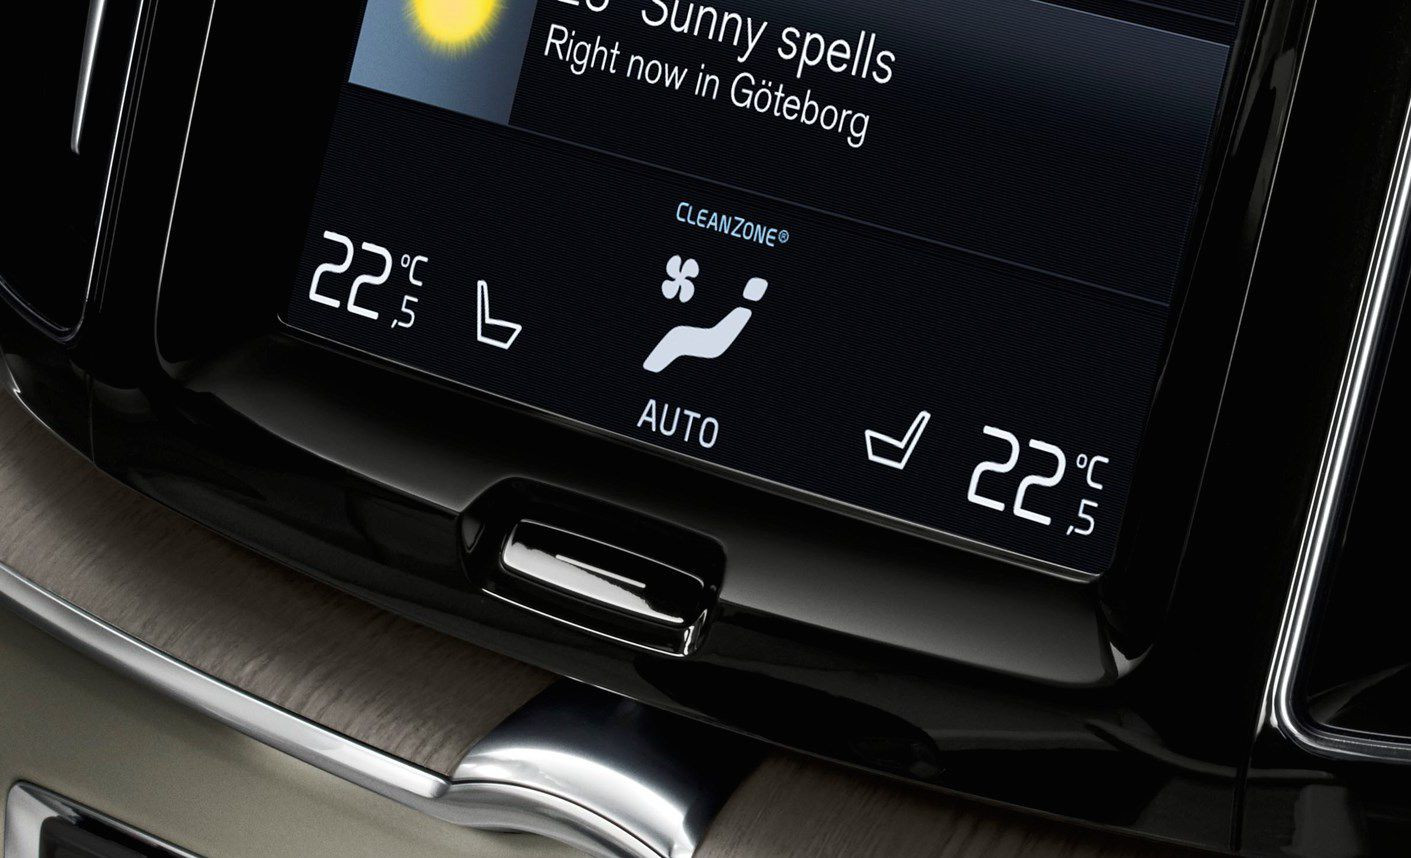 Display screen showing the climate control settings